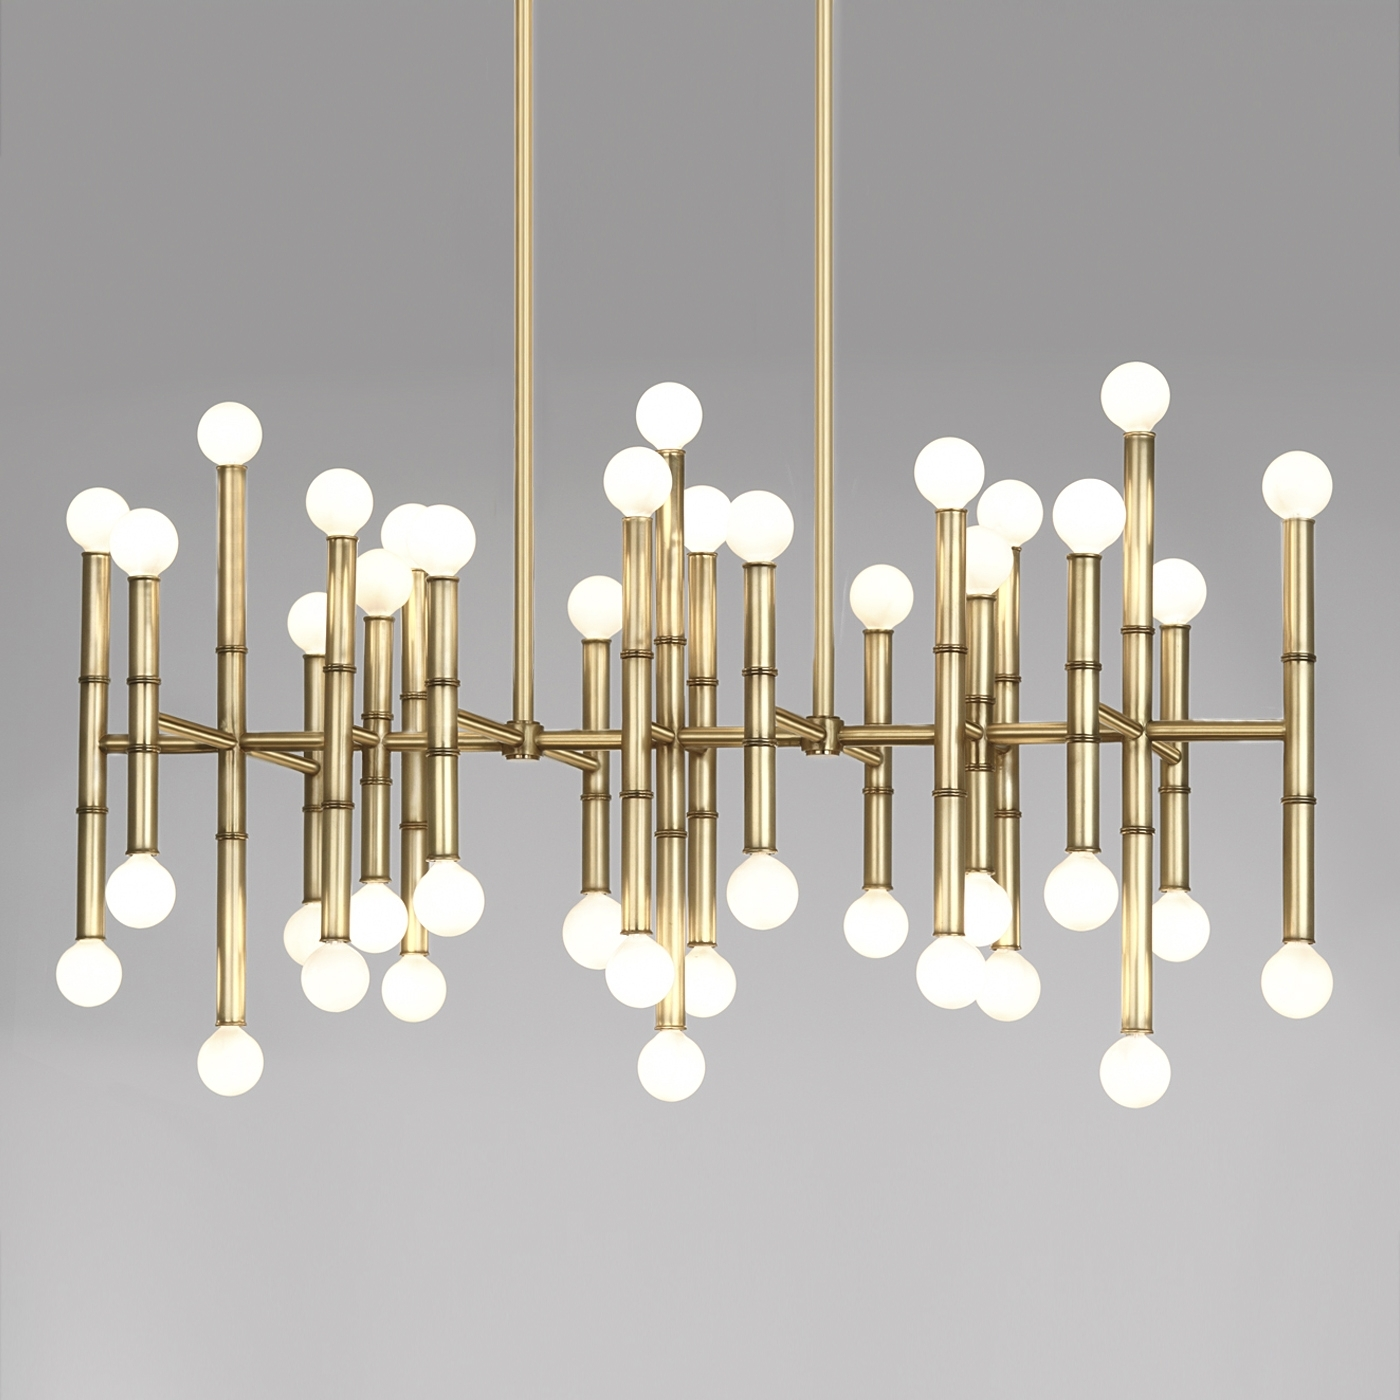 Jonathan Adler For Modern Chandeliers (View 4 of 20)